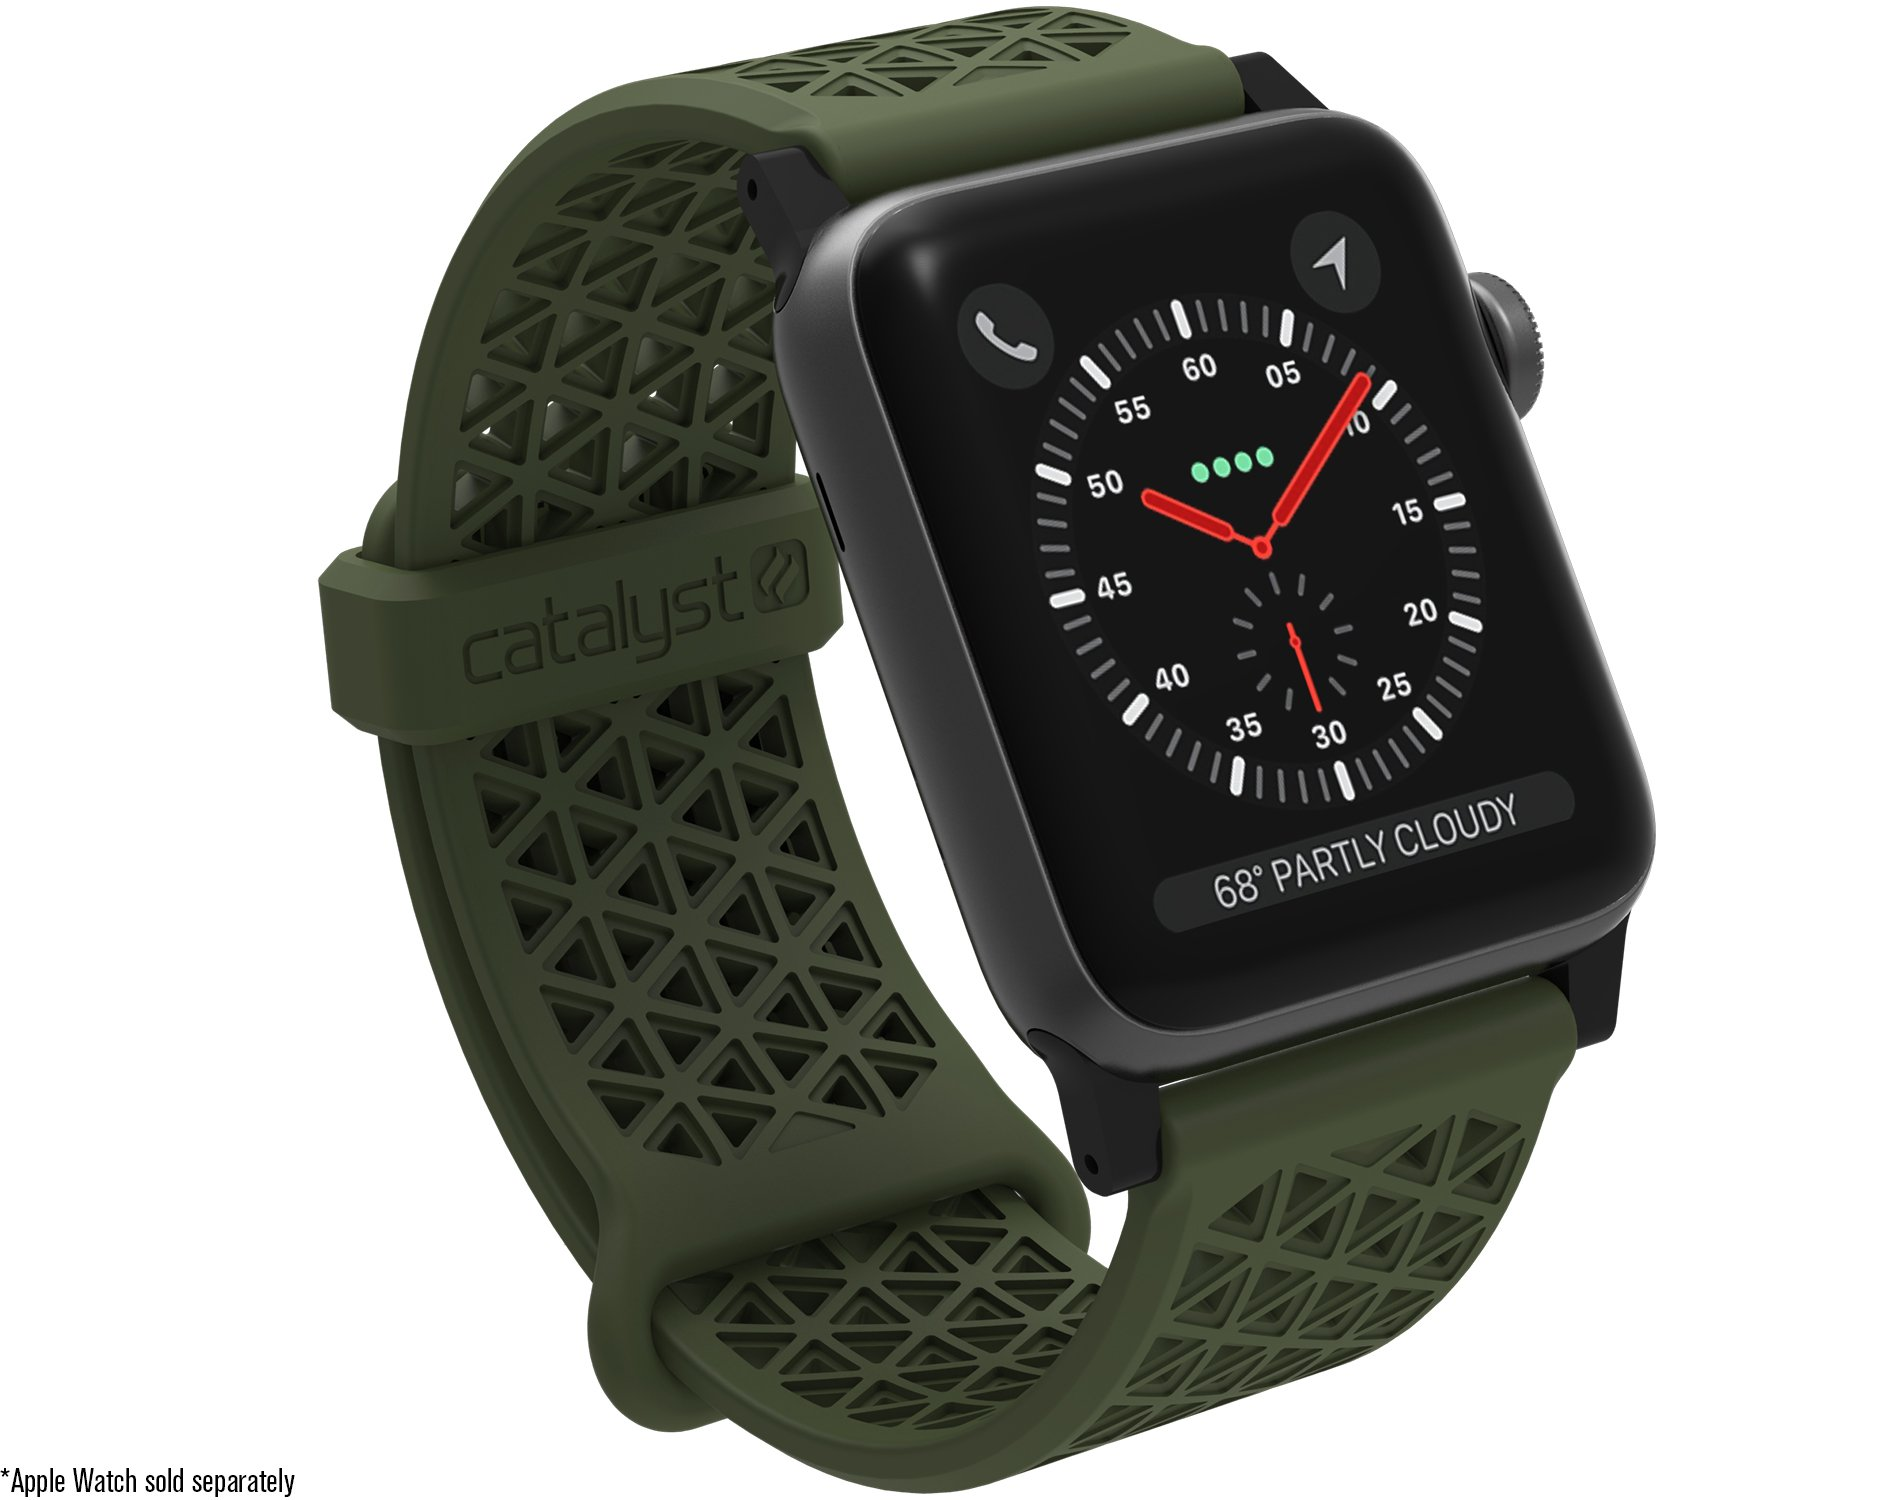 Catalyst Hypoallergenic Watch Band 42mm Silicone Sports Bands (24mm) Compatible Apple Watch Series 1, 2 & 3 and The 44mm Series 4 Quick Release Spring bar,Breathable iWatch Wristbands, Army Green